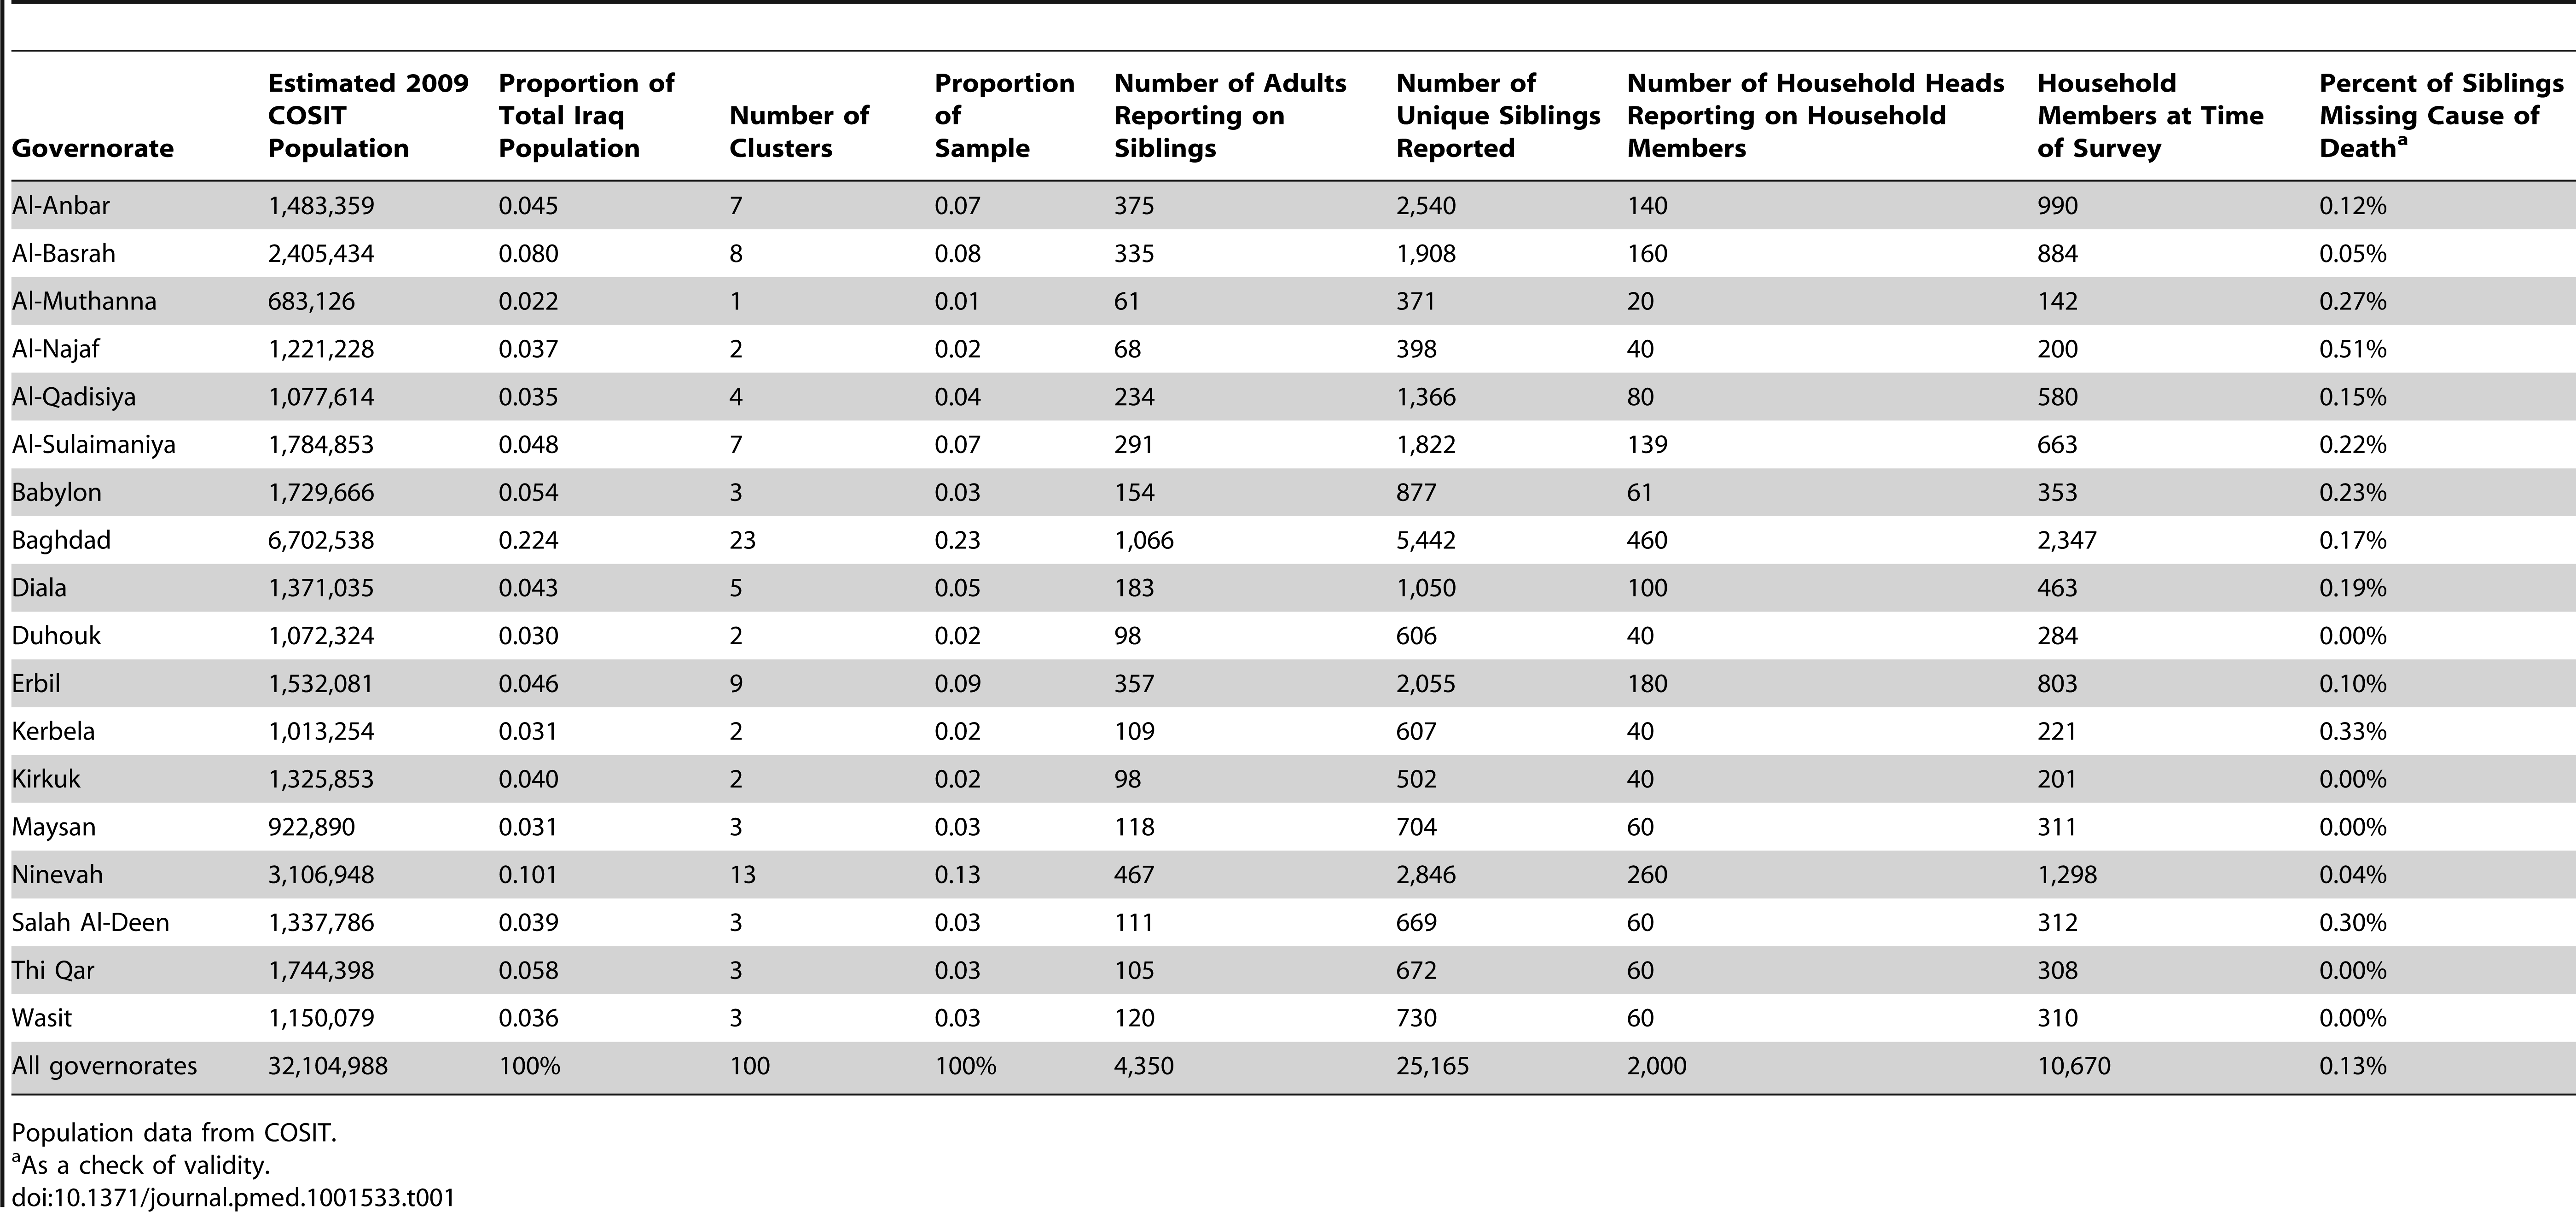 Sample size and counts of household members and siblings in the University Collaborative Iraq Mortality Study, by governorate.